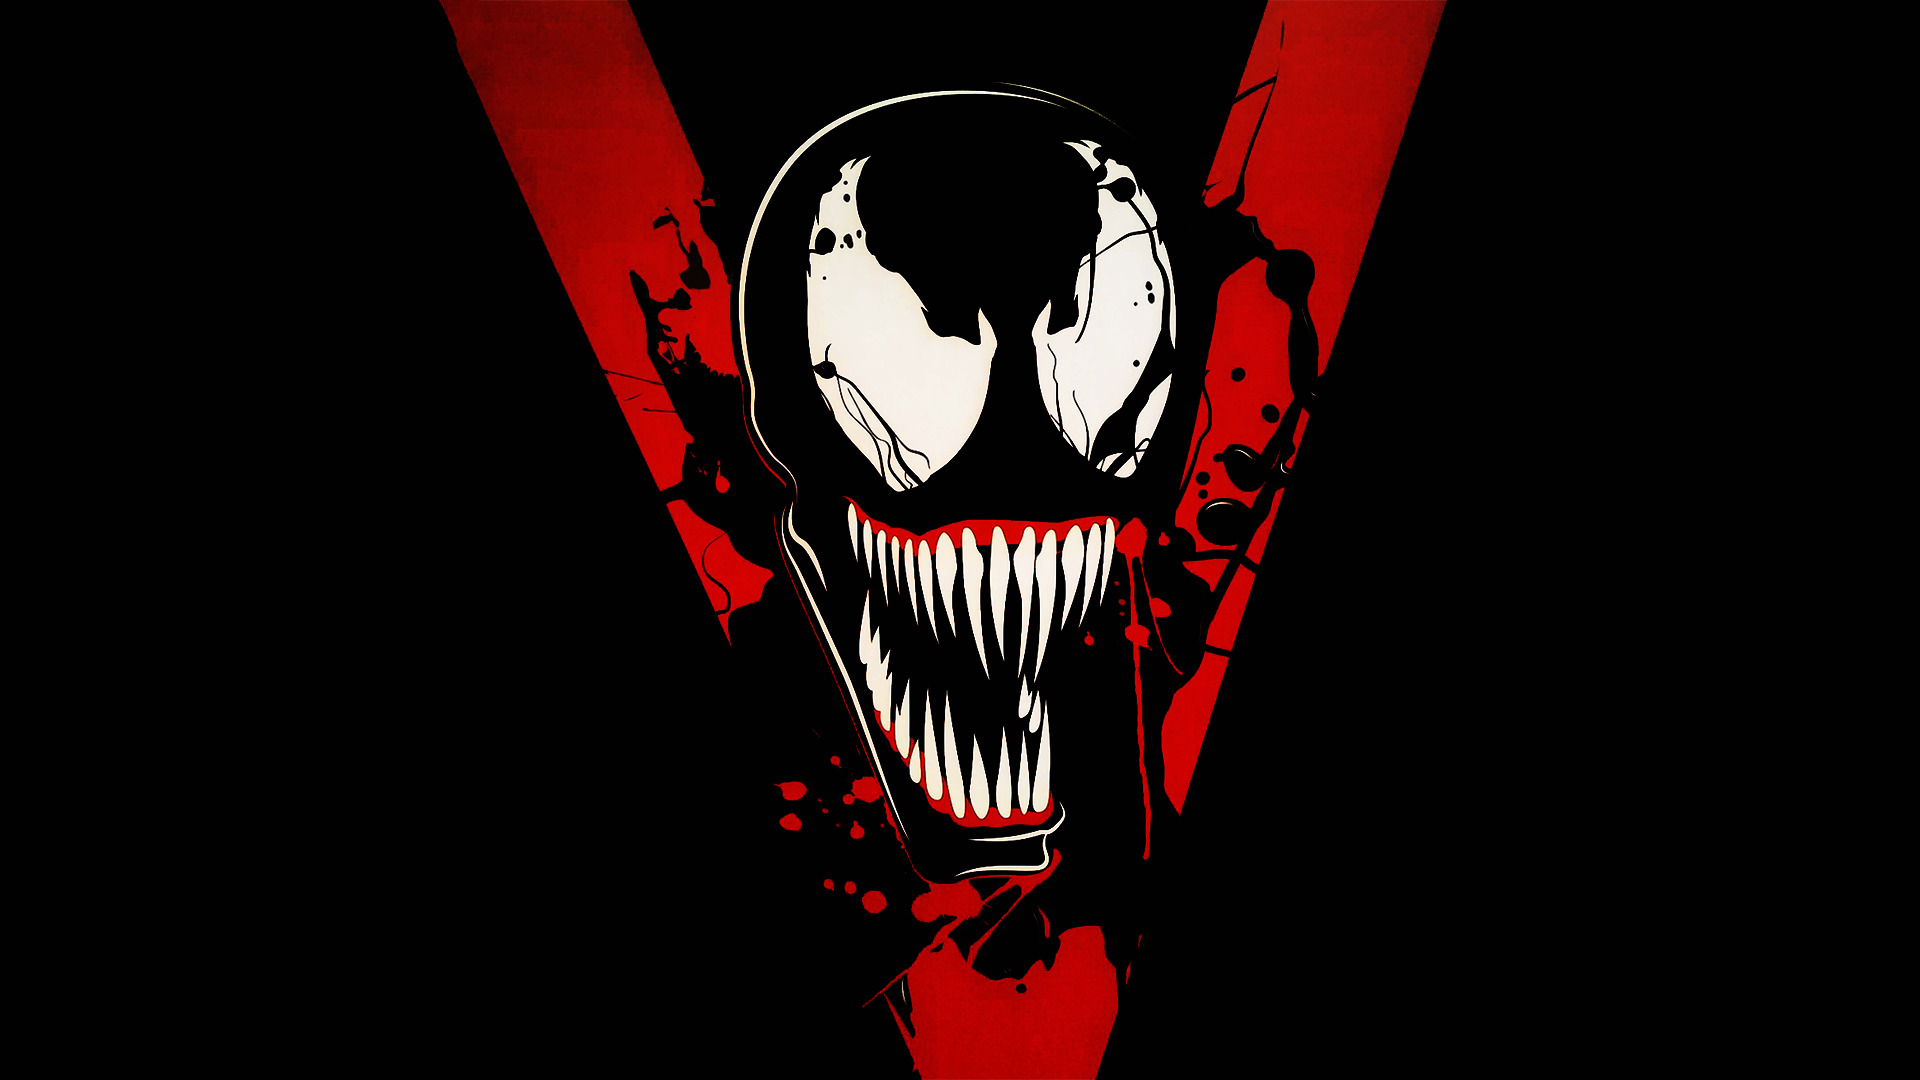 Download 1920x1080 wallpaper venom 2018 movie poster villain venom 2018 movie poster villain marvel 1920x1080 wallpaper voltagebd Image collections